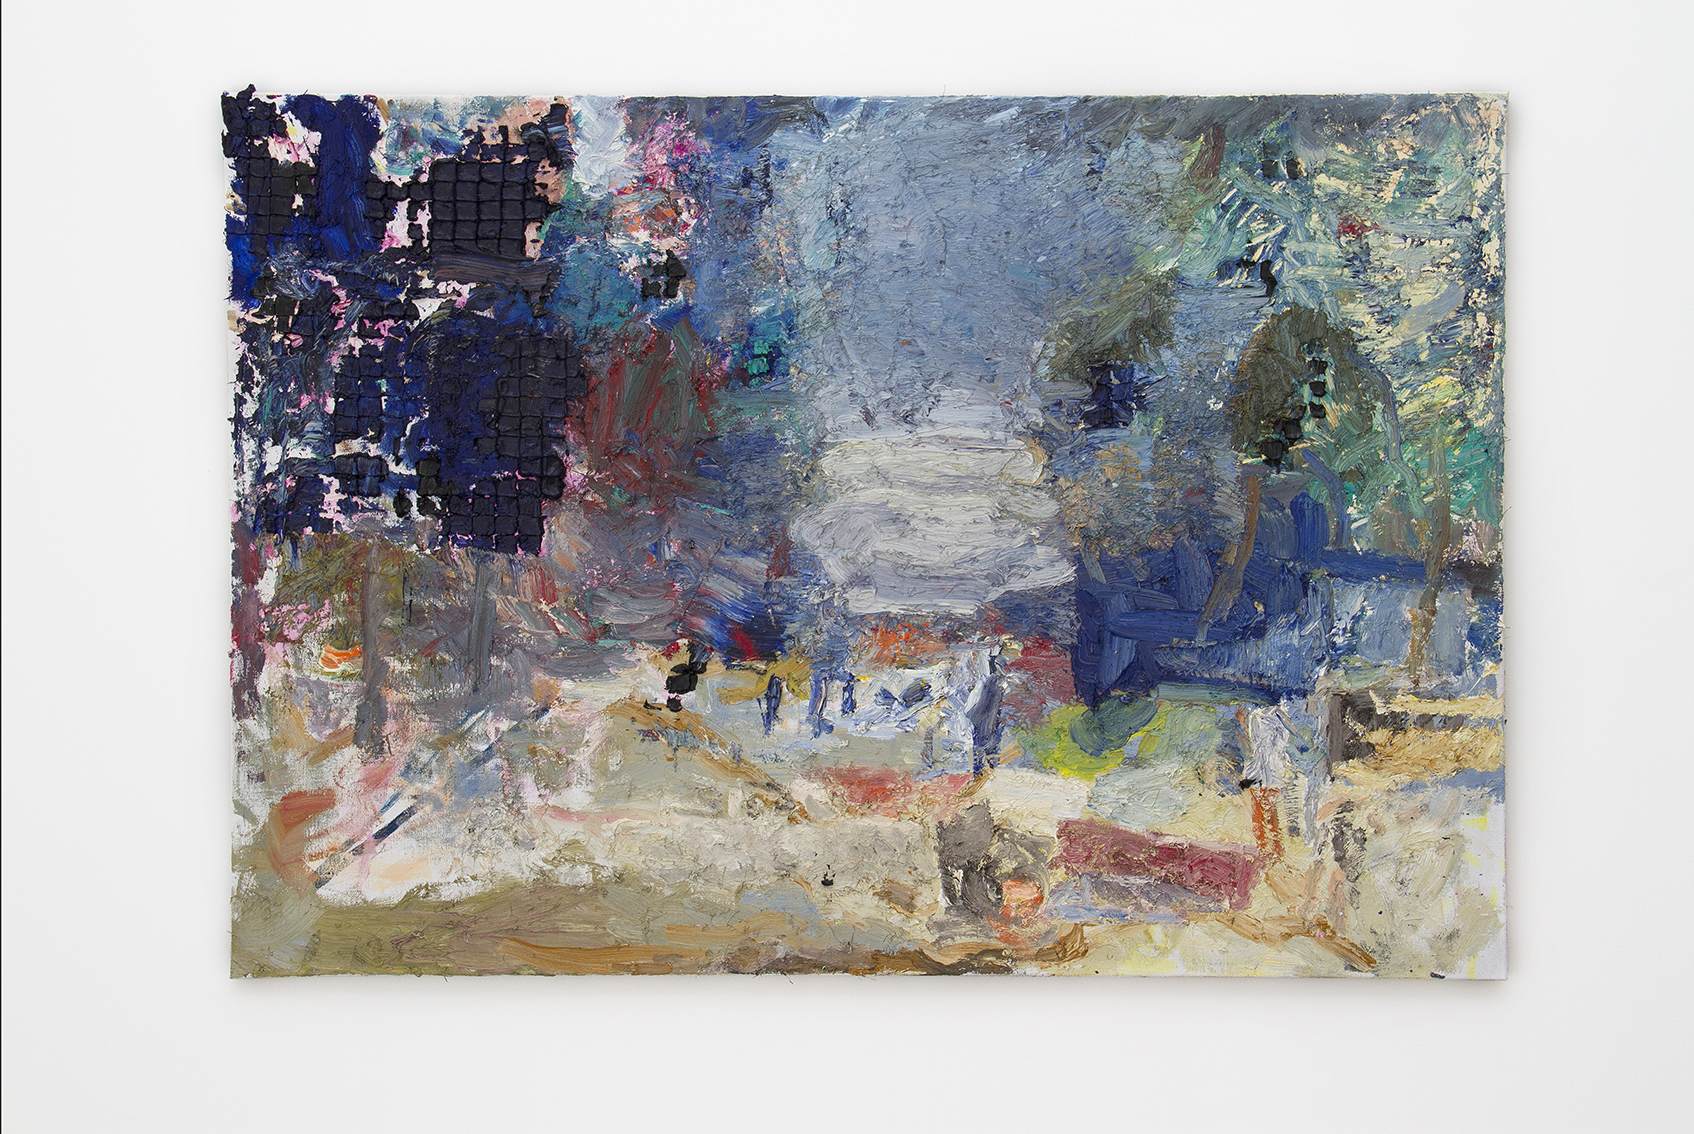 17. Park, 2015, oli on canvas, 90 x 130 cm